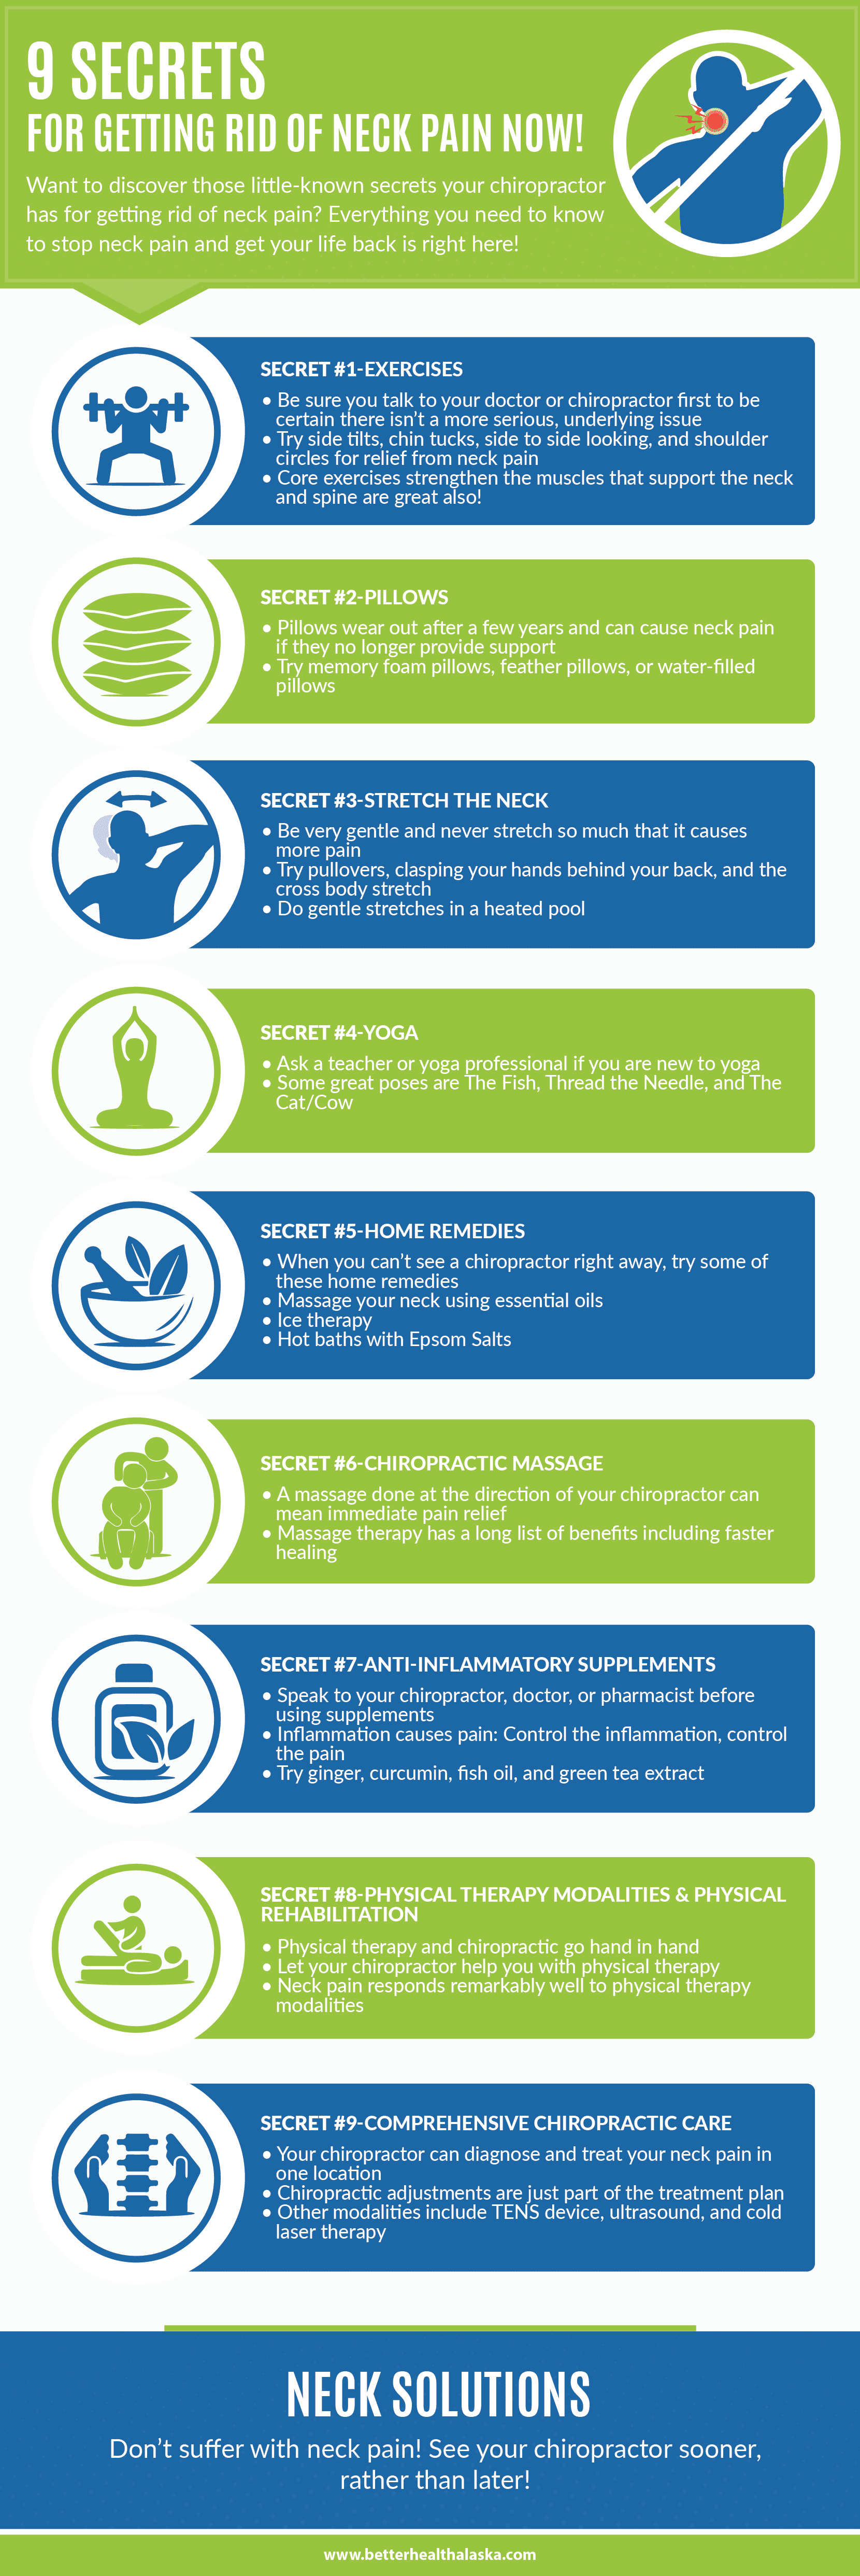 9 Secrets for Getting Rid of Neck Pain Infographic